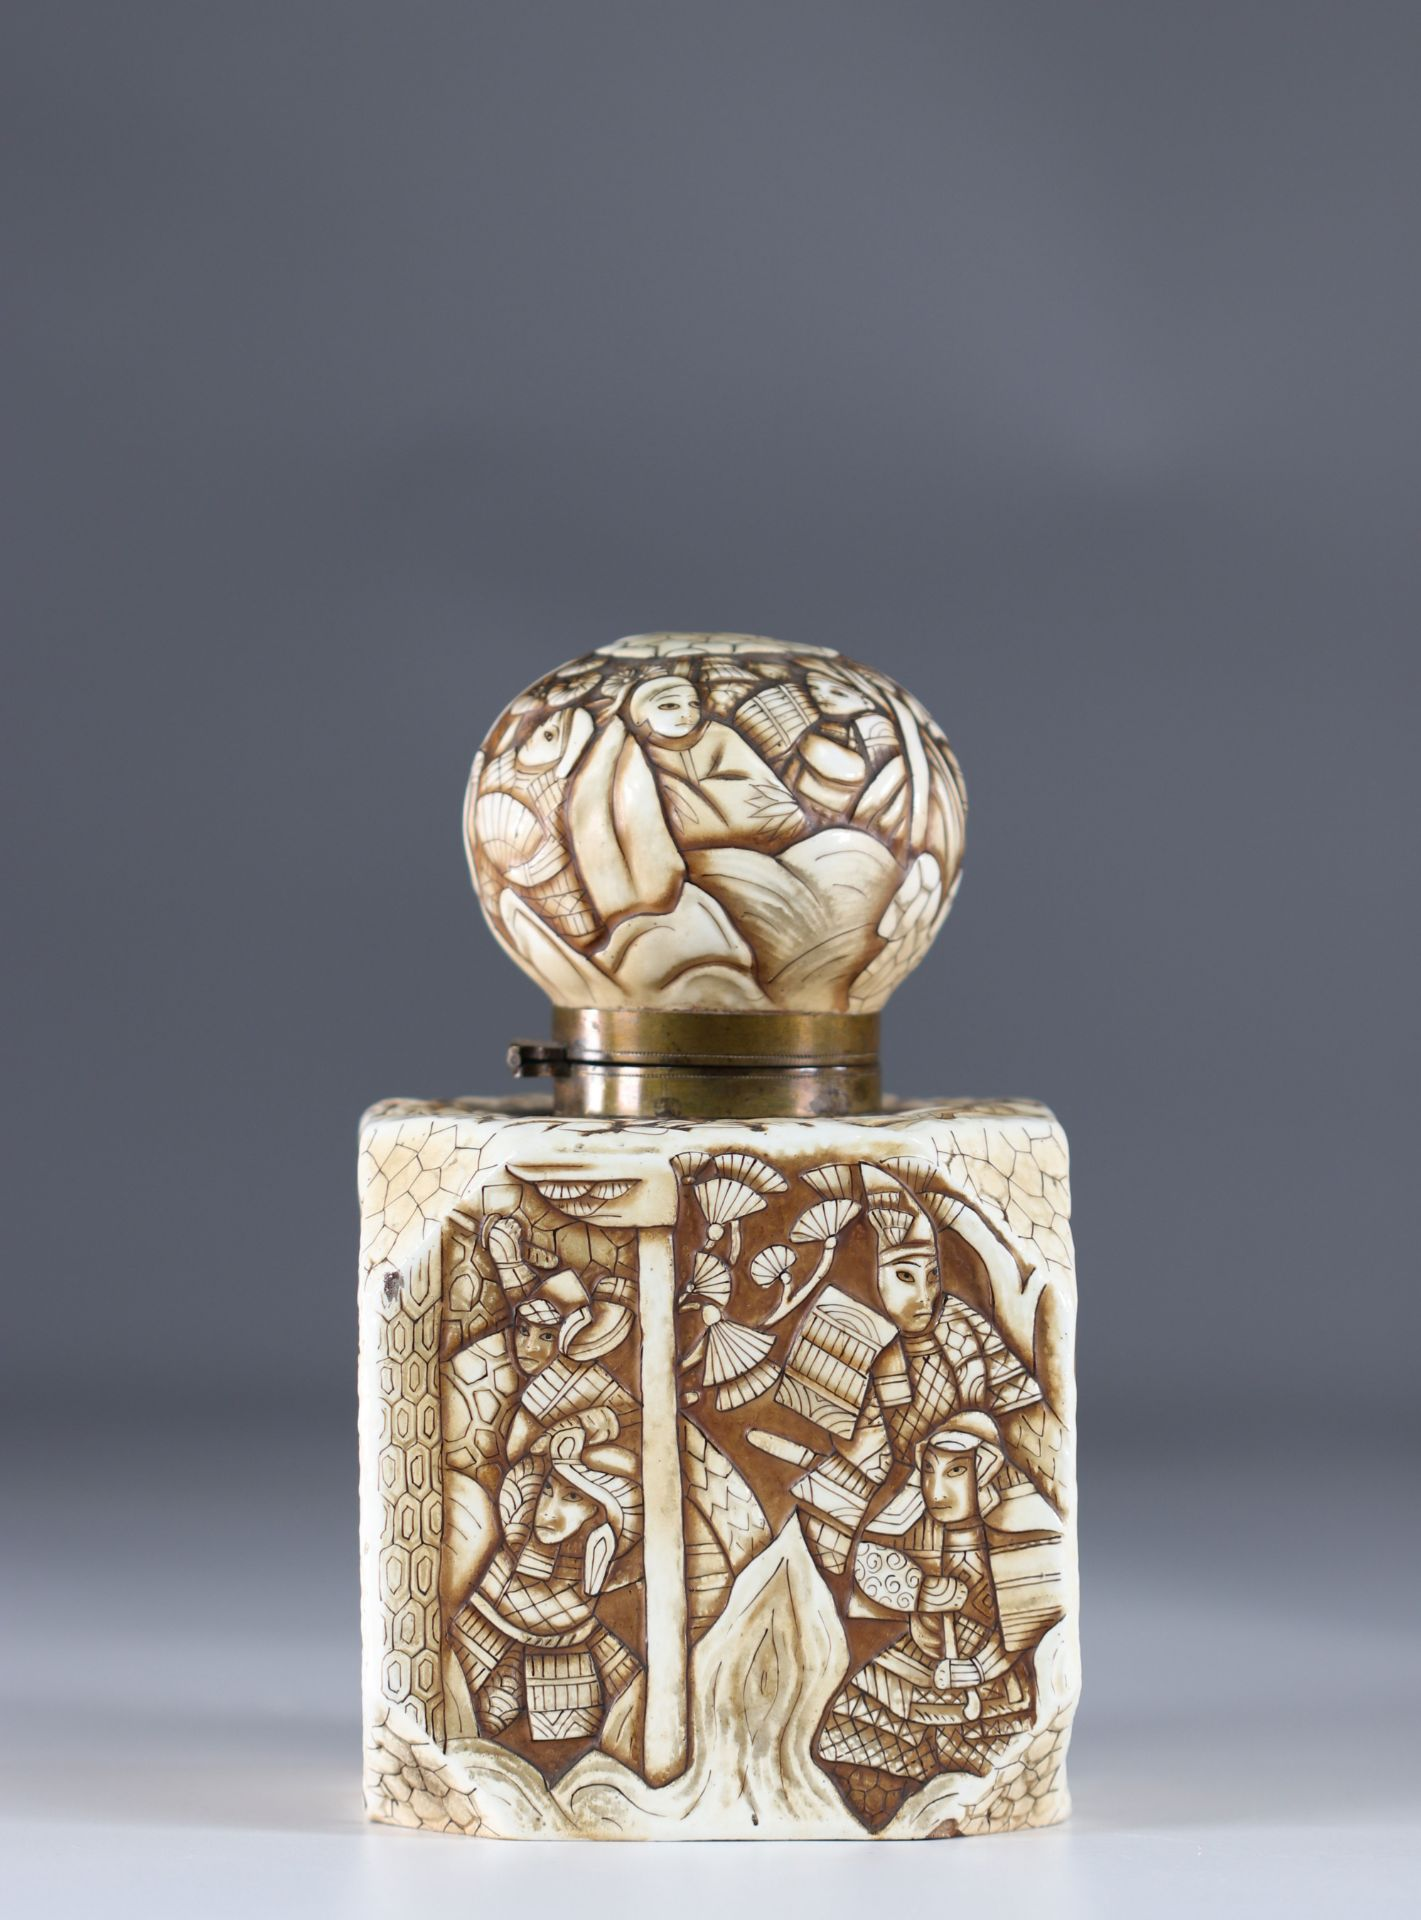 Japanese Art Deco porcelain inkwell decorated with warriors - Image 2 of 6